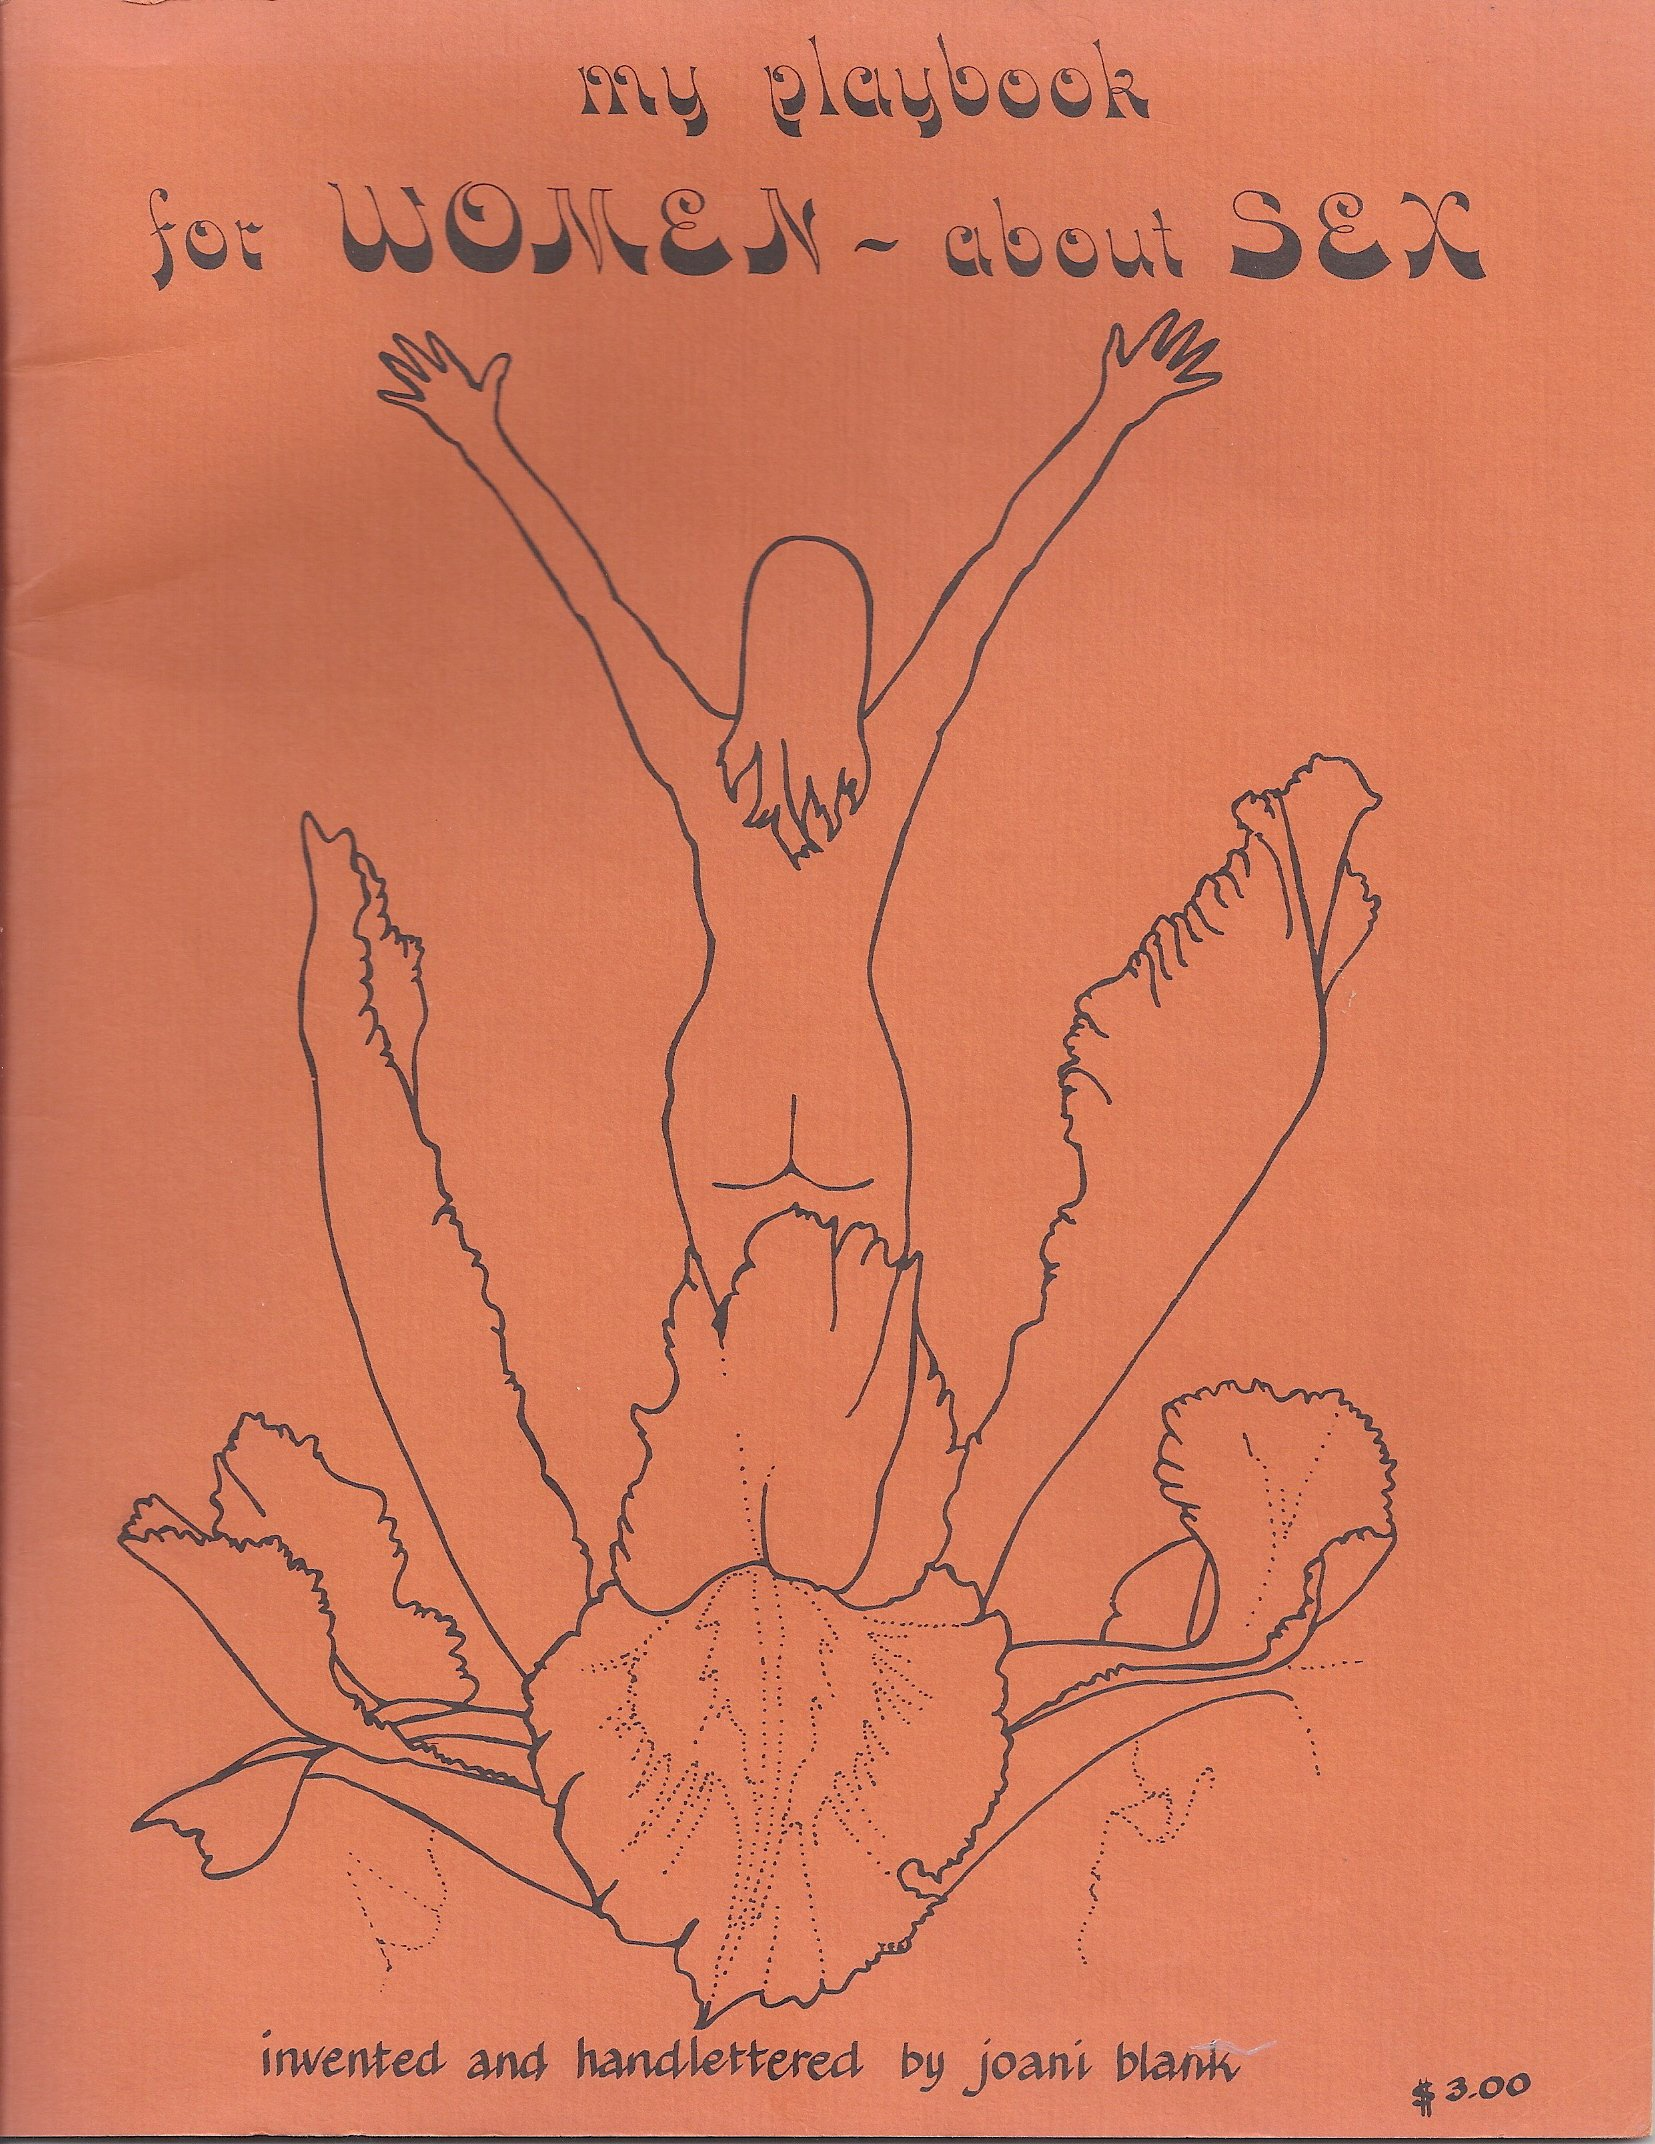 The Playbook for Women about Sex, Blank, Joani